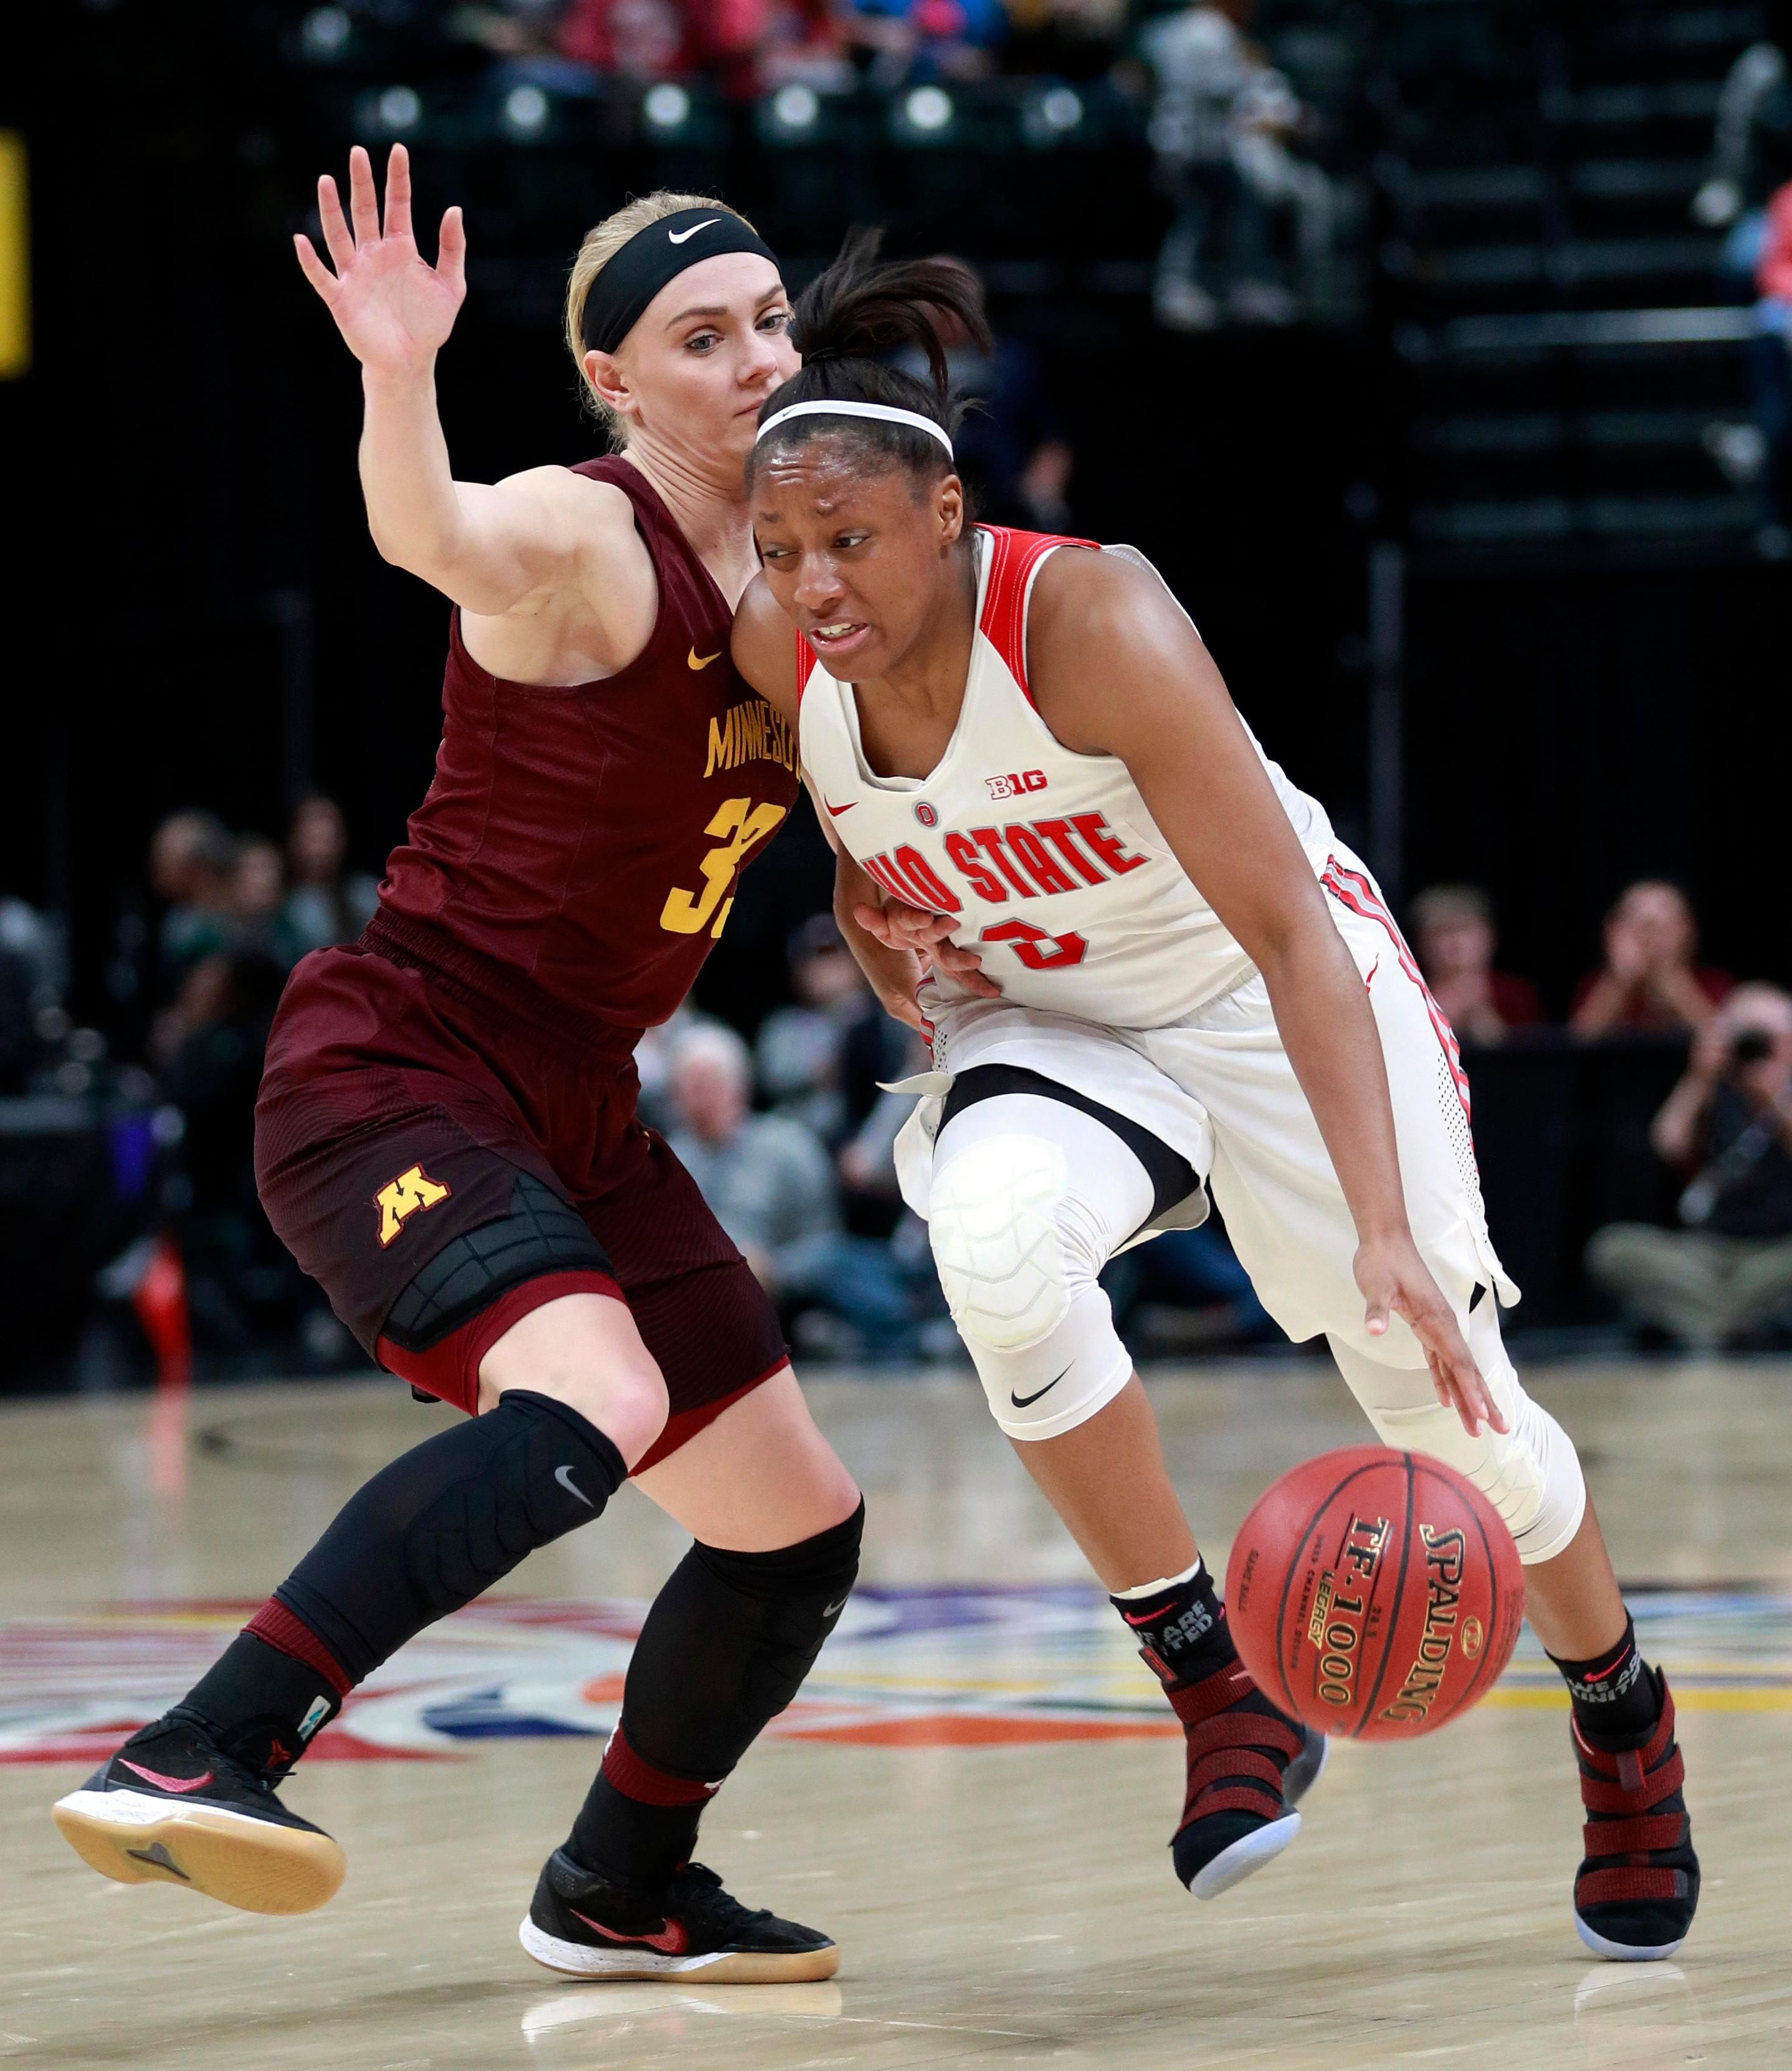 Ohio State guard Kelsey Mitchell, right, drives around Minnesota guard Carlie Wagner during the second half of an NCAA college basketball game in the semifinals of the Big Ten women's tournament, Saturday, March 3, 2018, in Indianapolis. Ohio State won 90-88. (AP Photo/R Brent Smith)